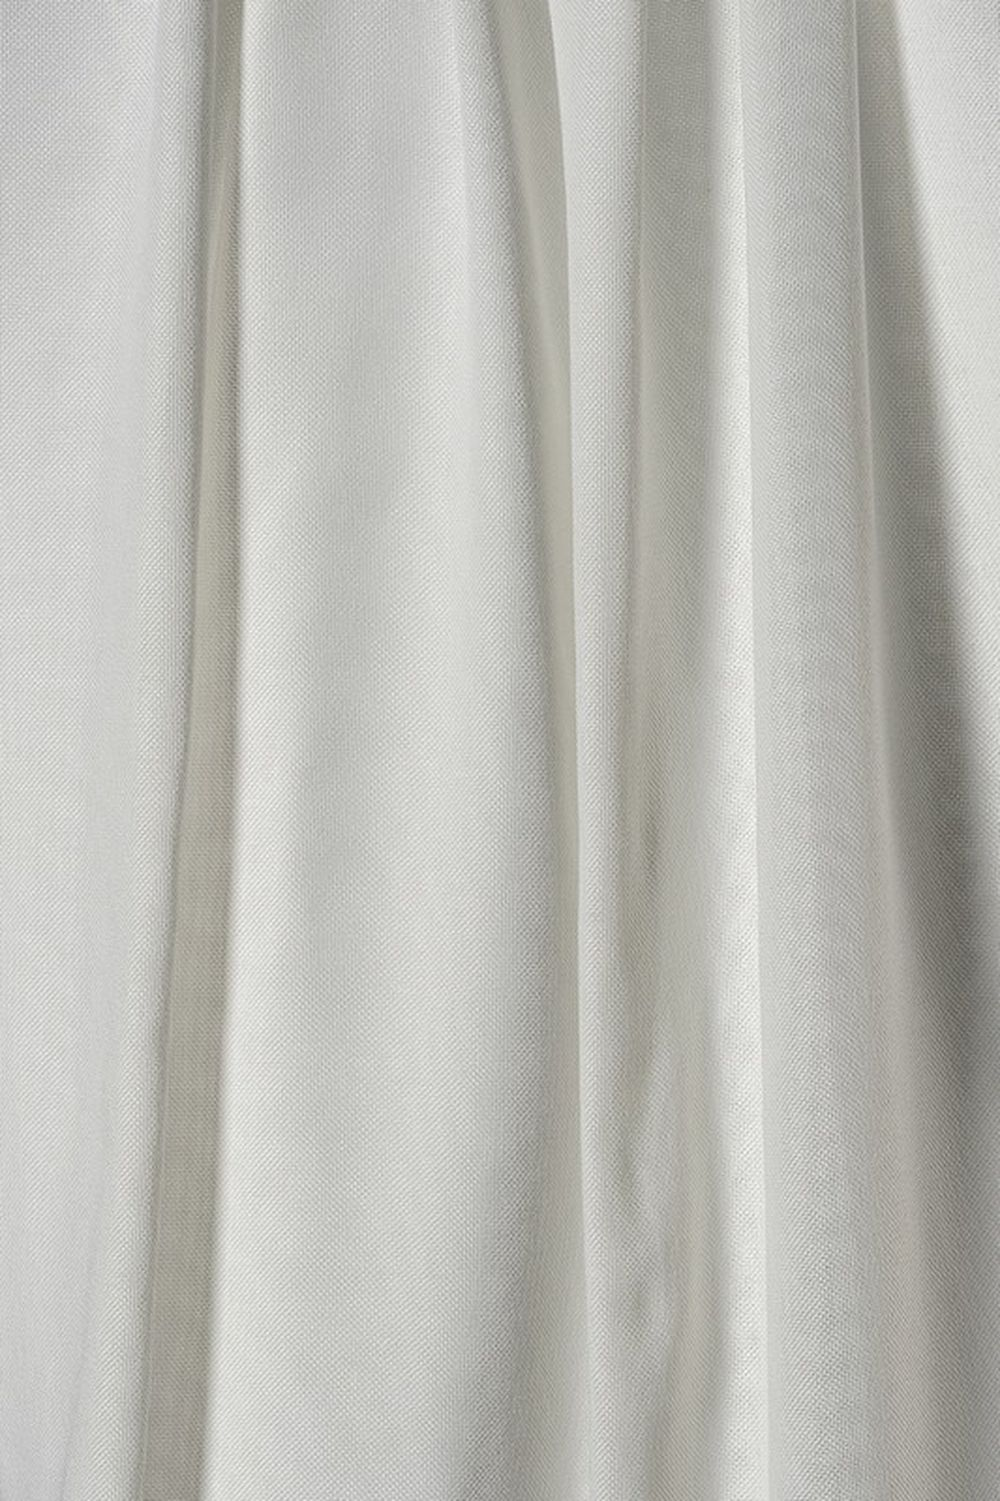 Photo of the fabric Refine * Ivory swatch by Pegasus. Use for Sheer Curtains. Style of Plain, Sheer